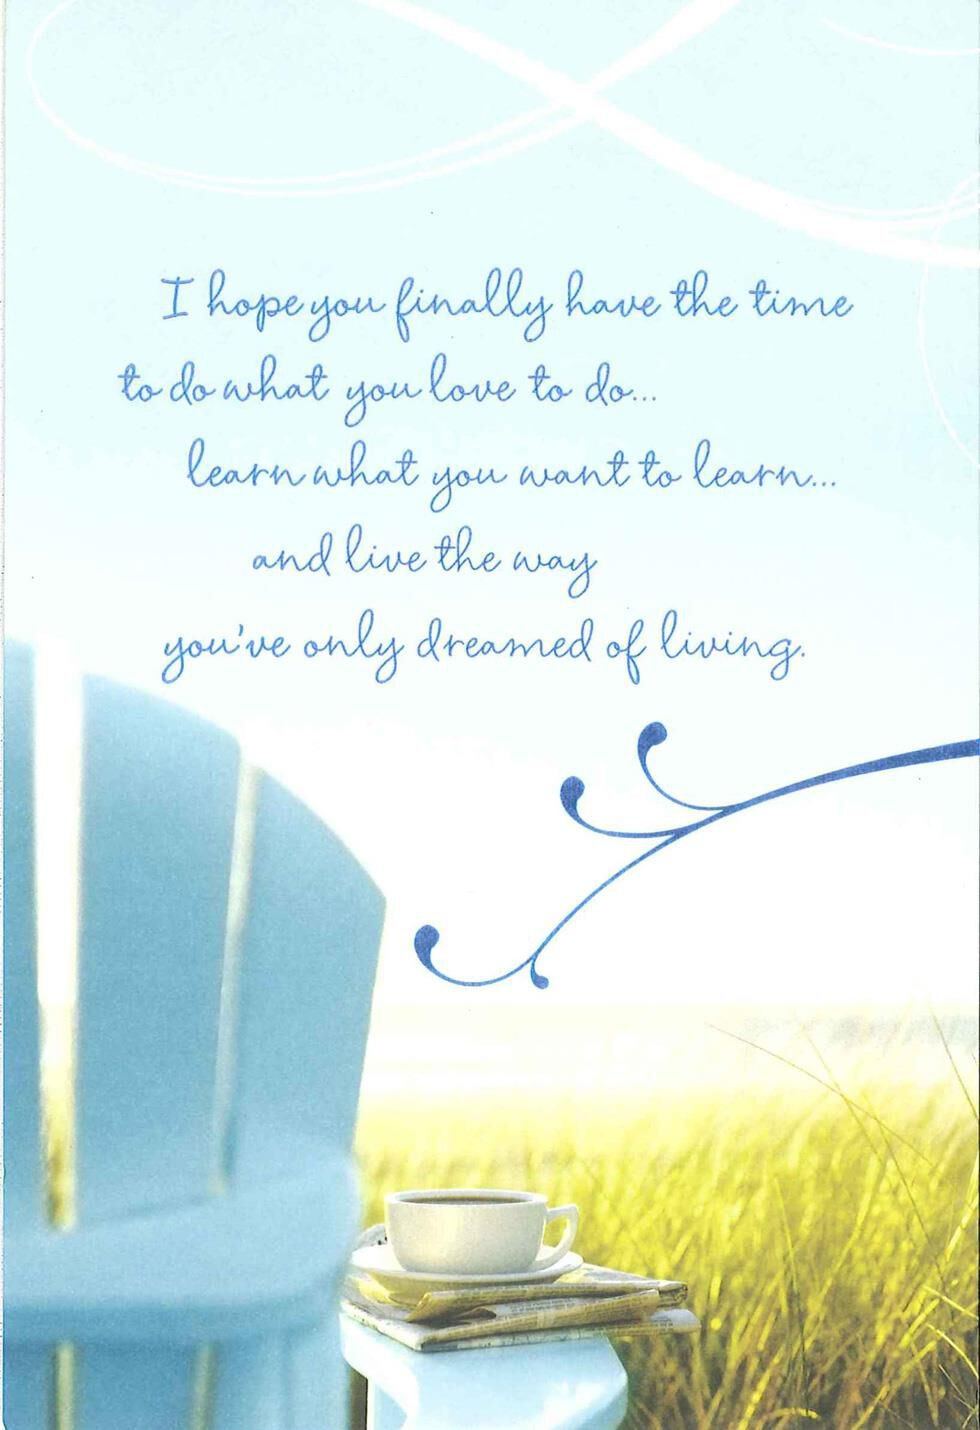 What To Write In A Retirement Card >> Exciting New Chapter Retirement Card - Greeting Cards - Hallmark